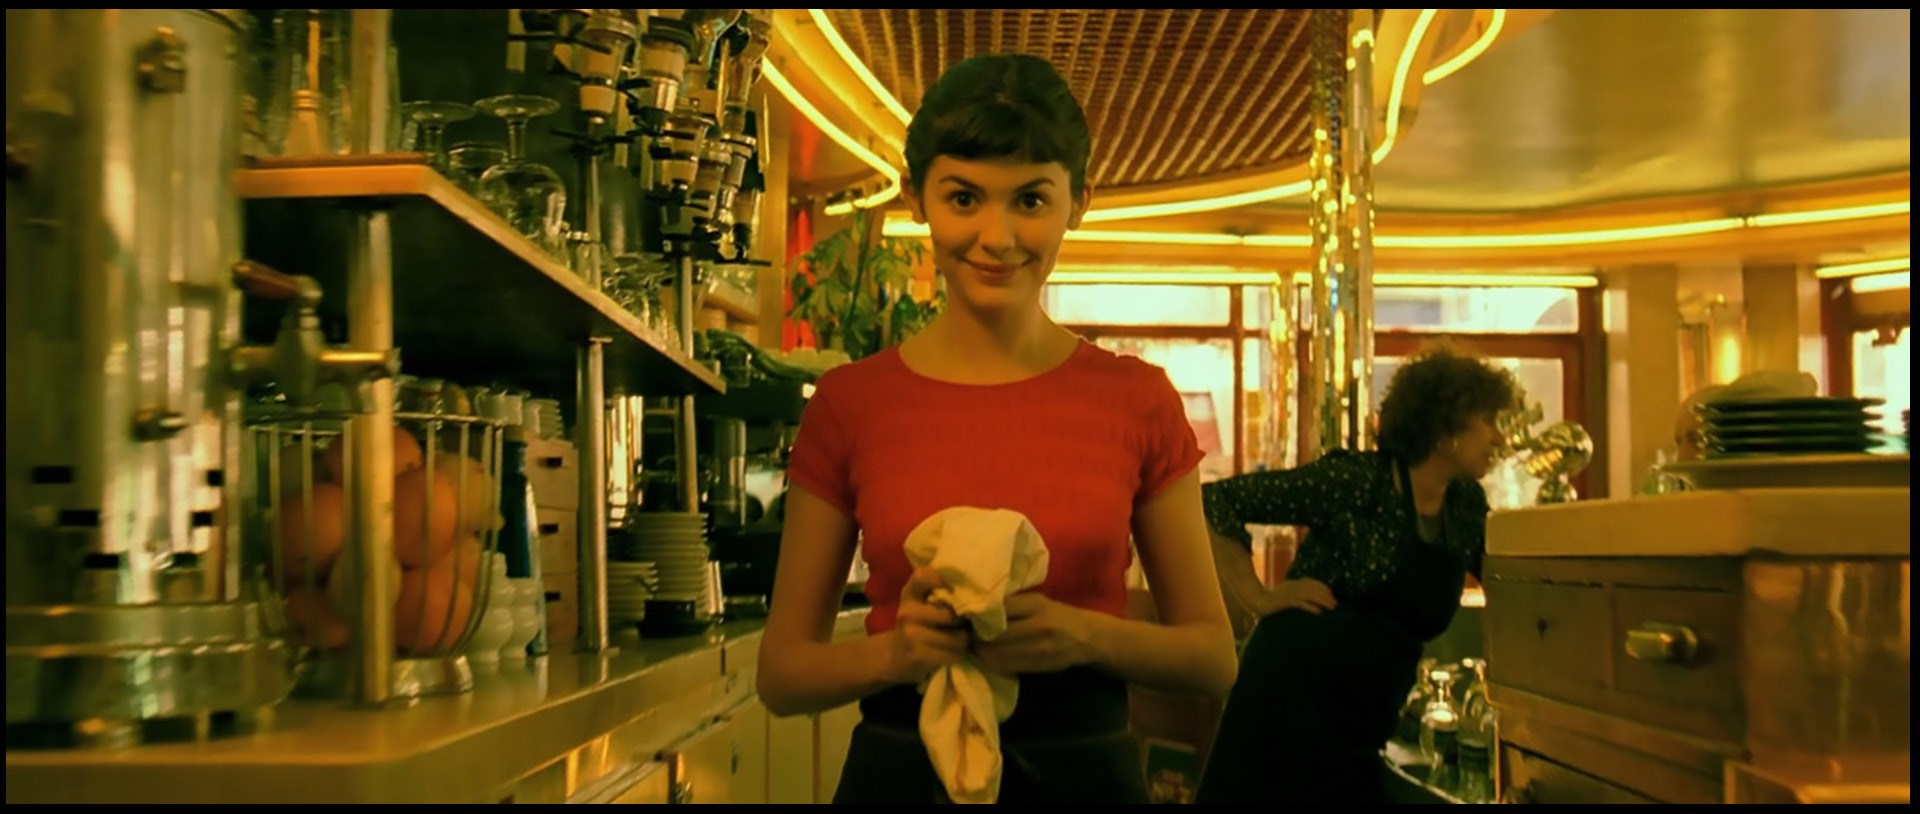 Amélie (35mm) - Breakfast Screening